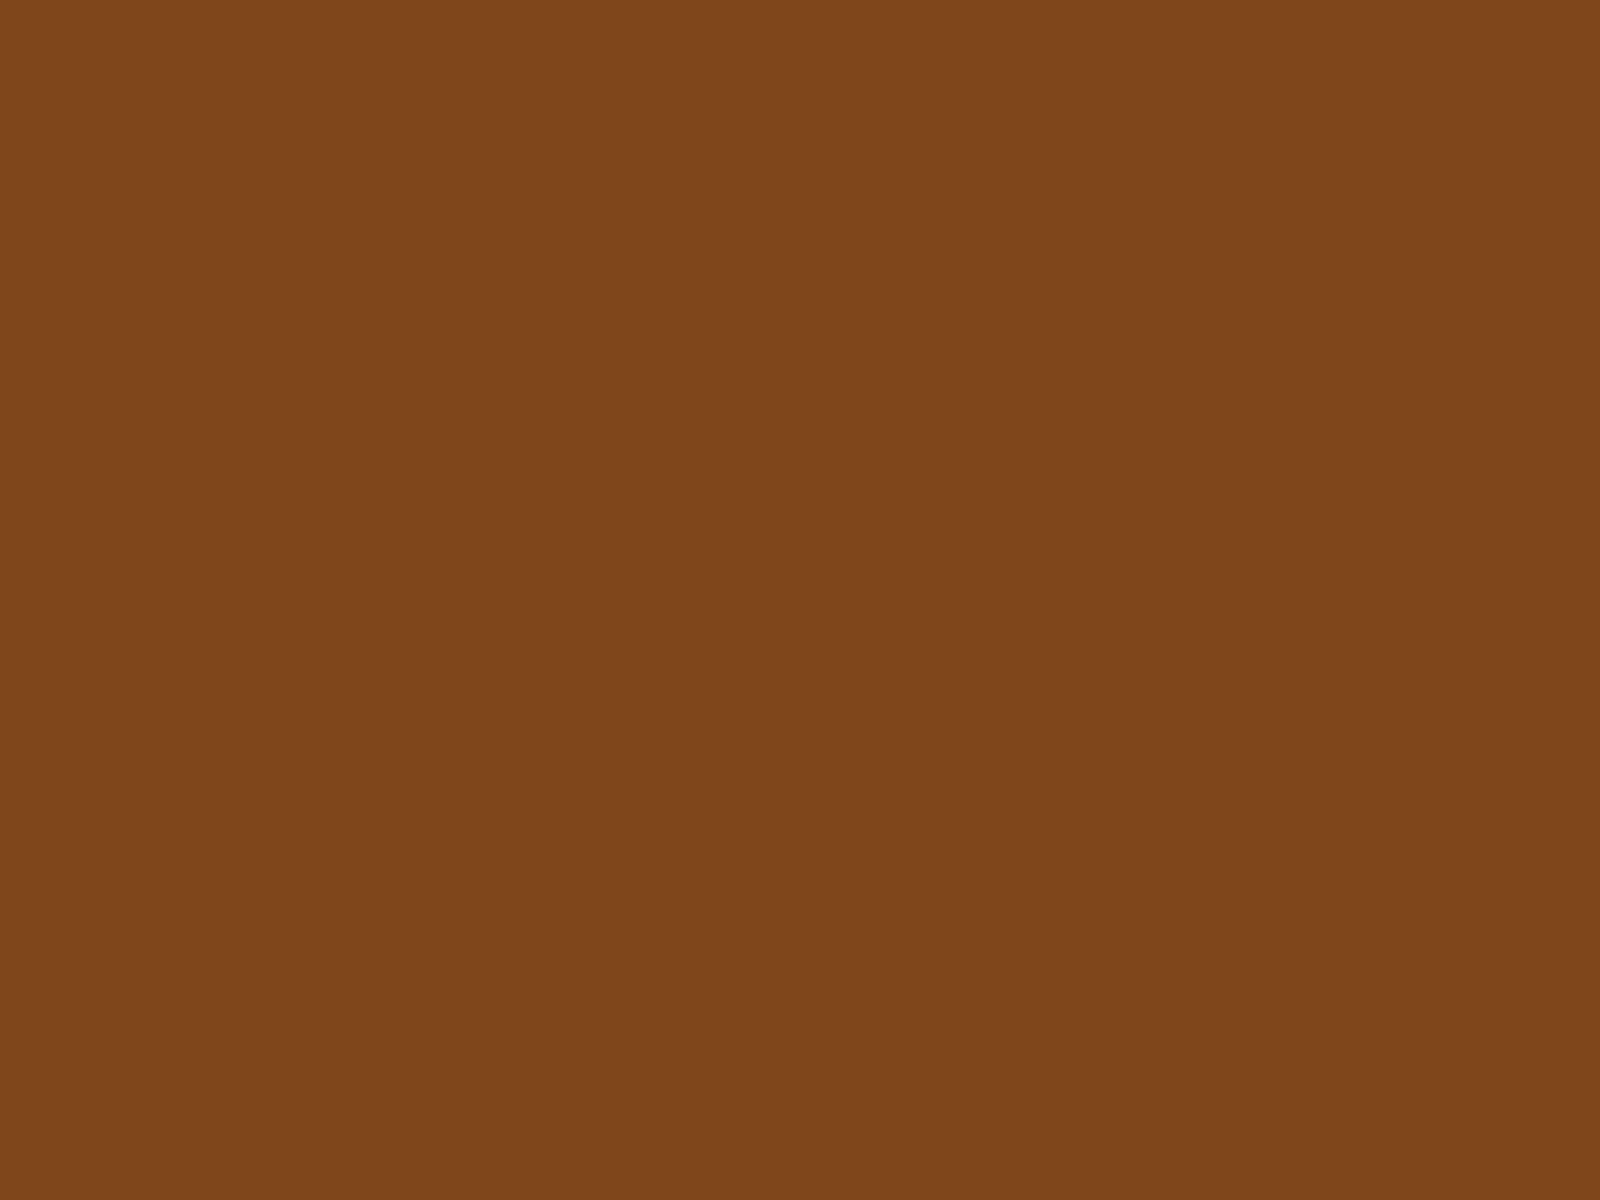 1600x1200 Russet Solid Color Background